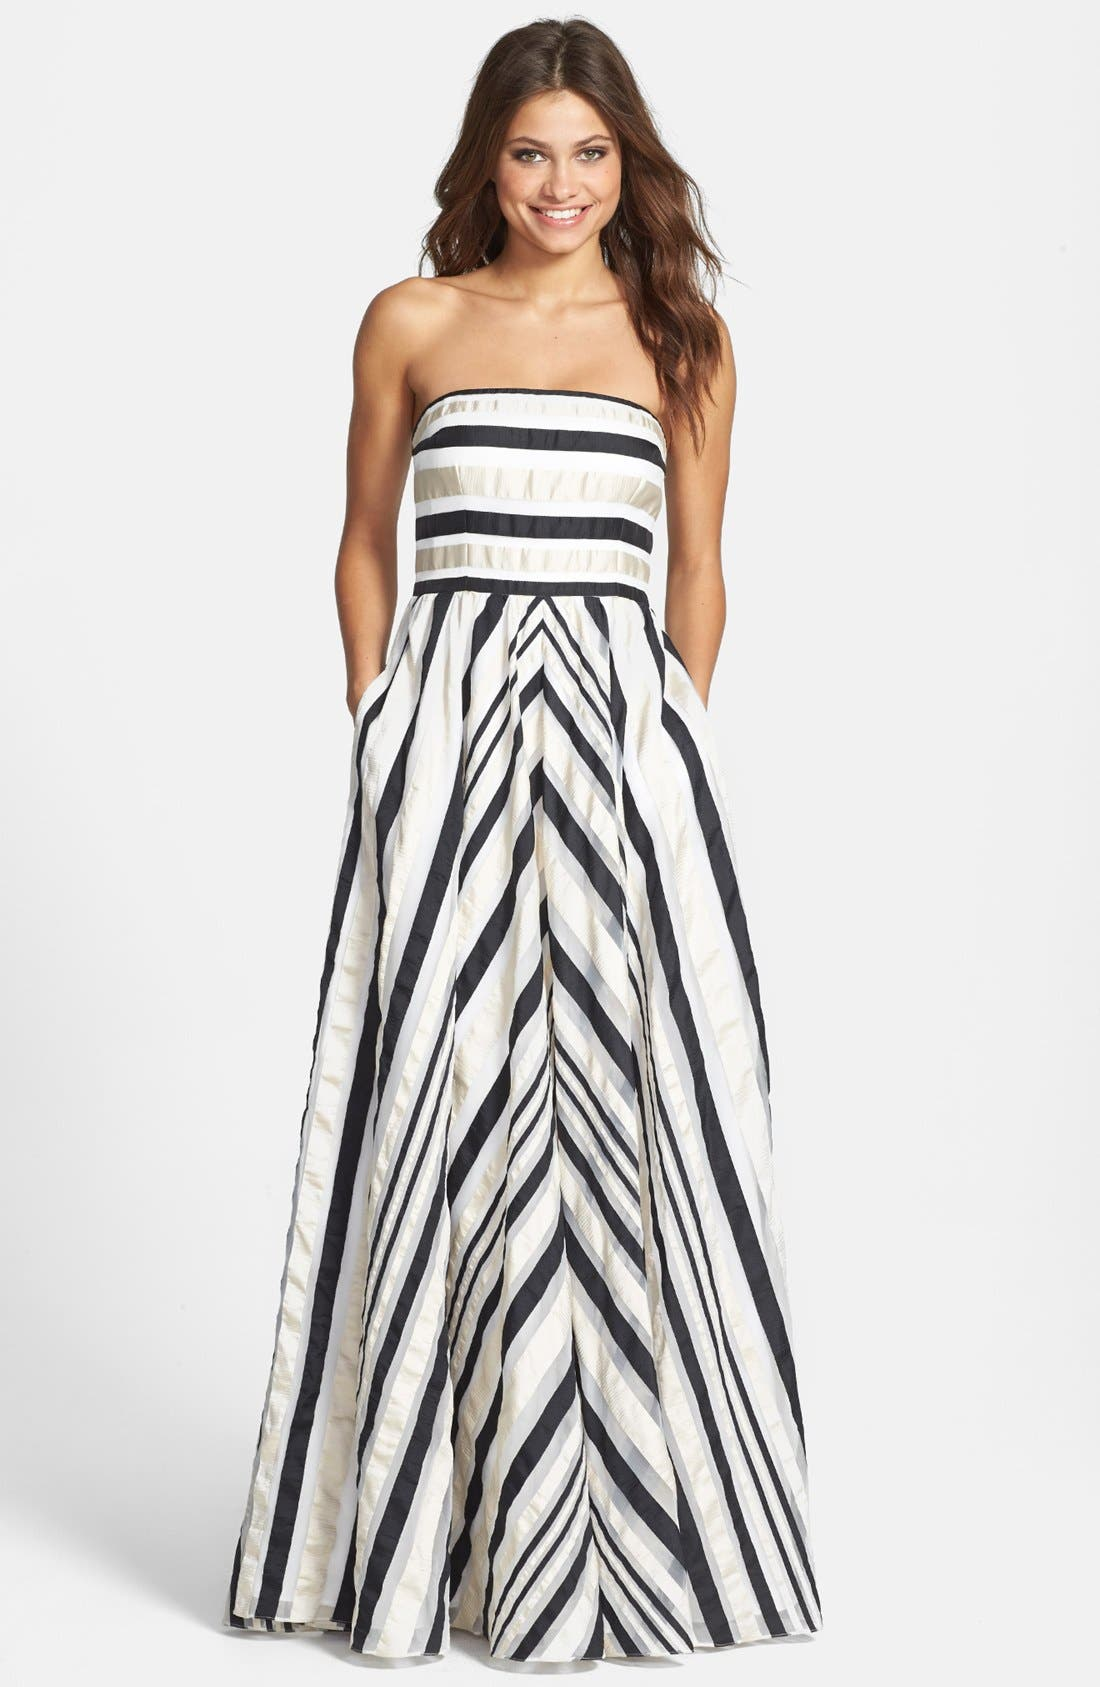 ADRIANNA PAPELL Ribbon Stripe Strapless Dress, Main, color, 001